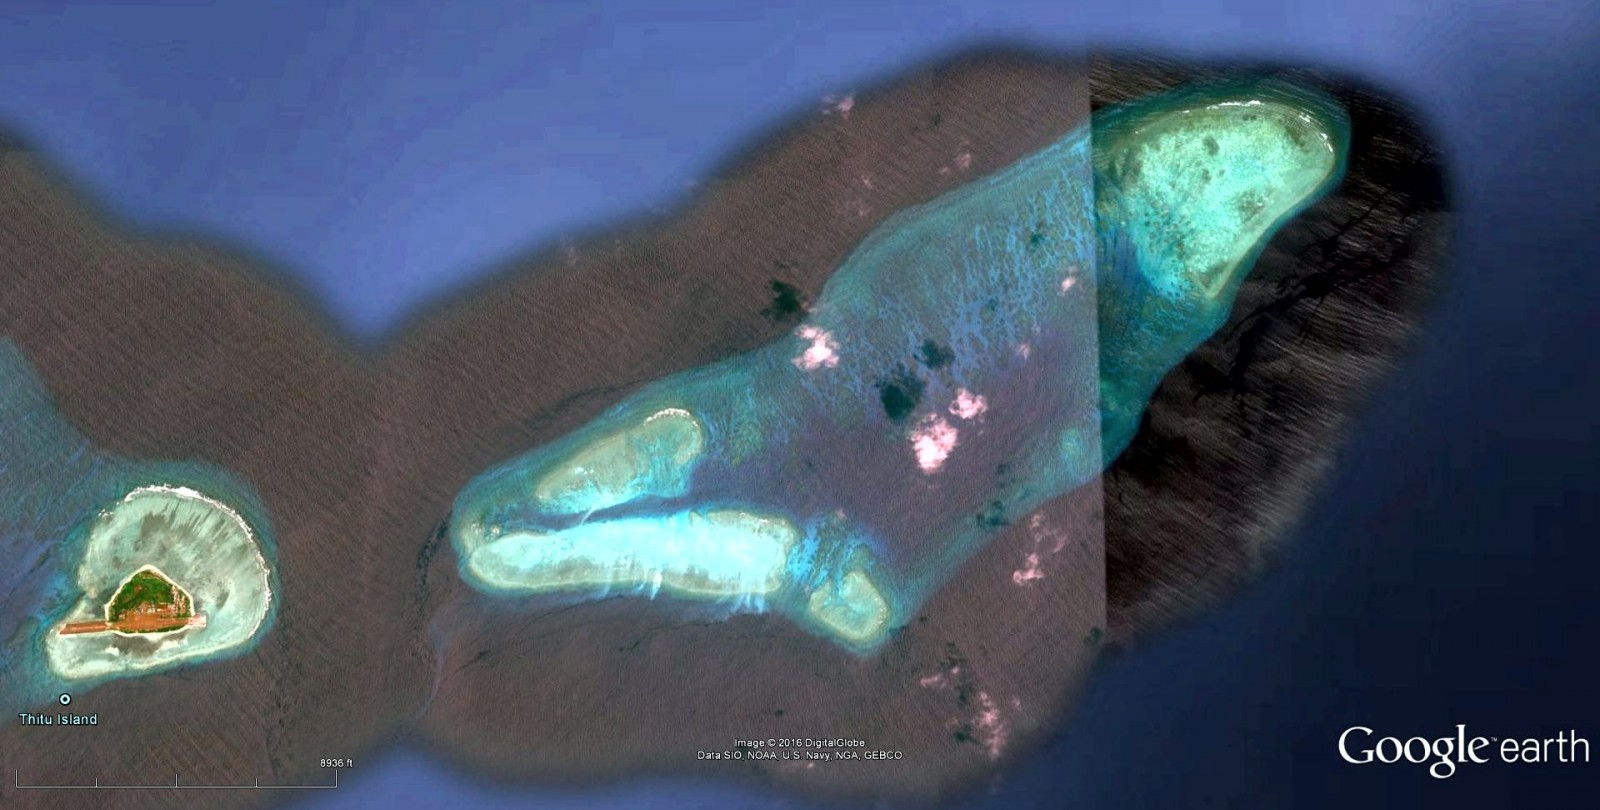 Google Earth image of Thitu Reef, the 'checkmark' reef and Tieshi Reef